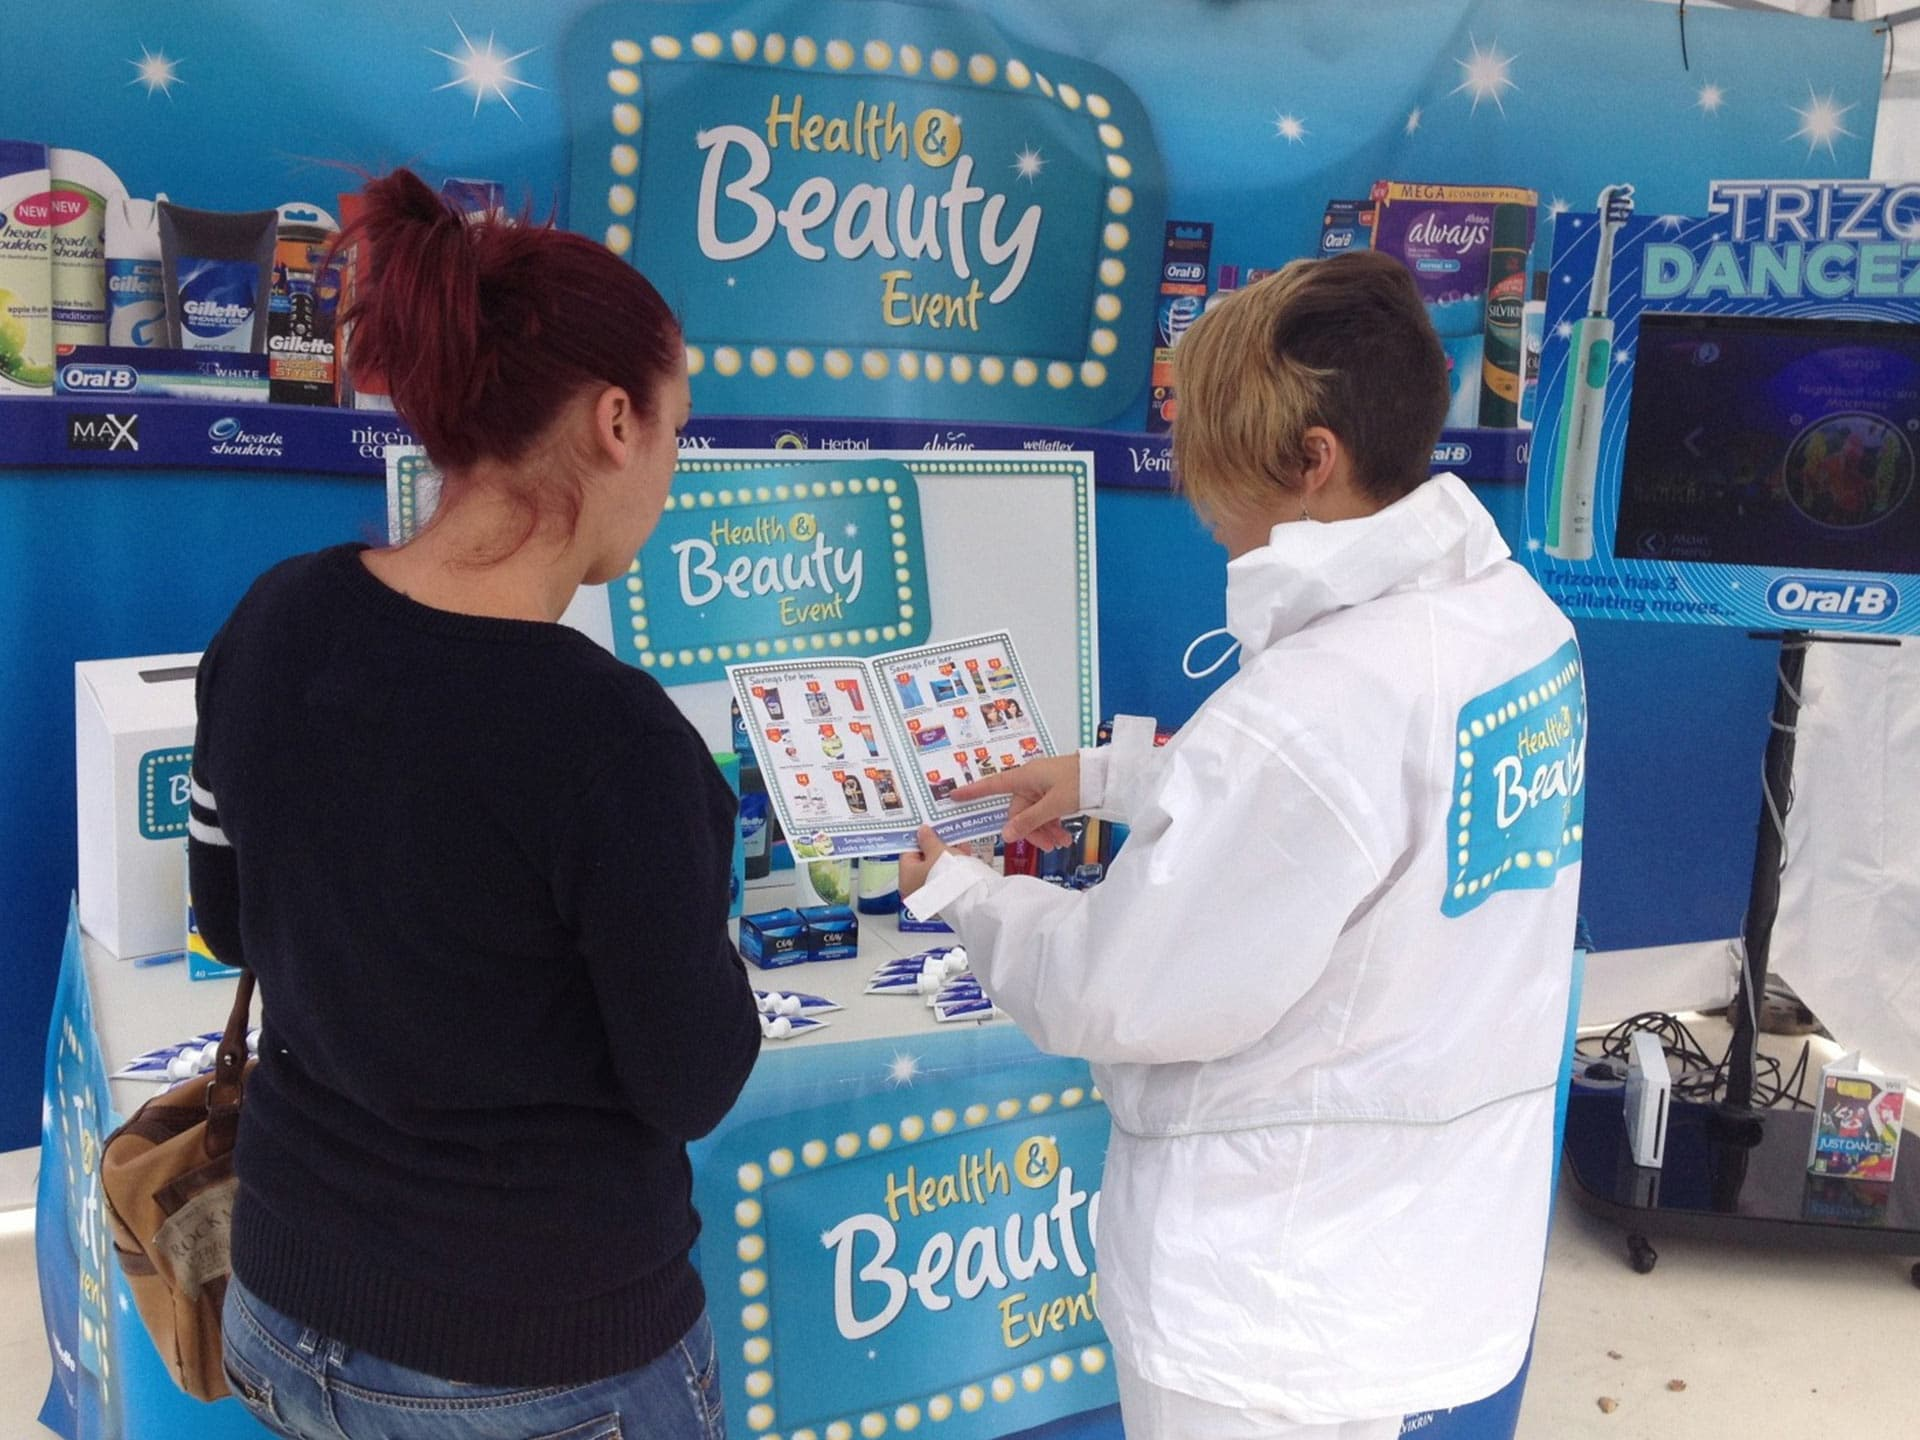 Oral B Product Demonstration, Experiential demonstration, Product Sampling, shopper marketing agency, convenience sampling, retail marketing agency, marketing campaign, promotion